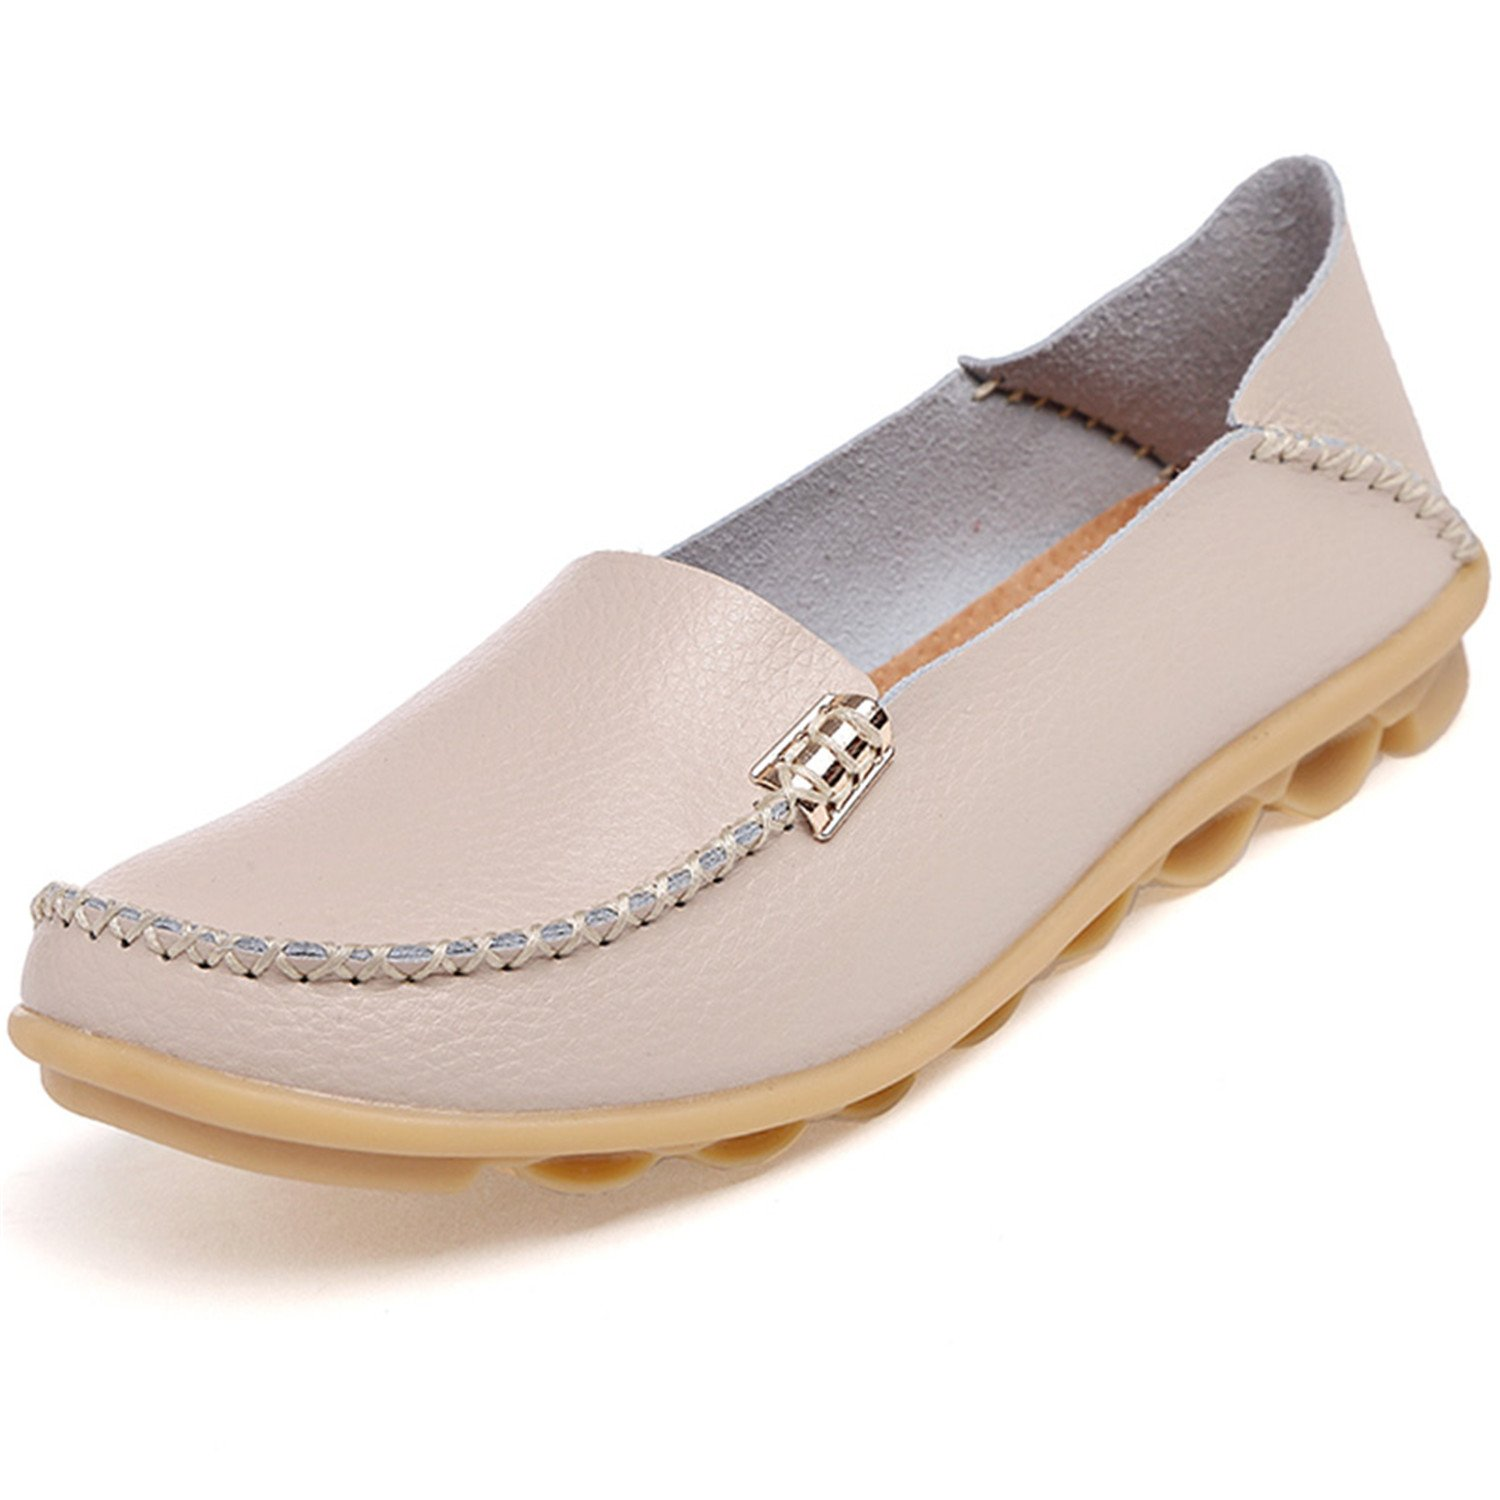 Beststore VAO Summer Candy Colors Genuine Leather Women Casual Shoes New Fashion Breathable Slip-On Peas Massage Flat Shoes Plus Size 35-44 B078FSR7WG 5 B(M) US|Beige